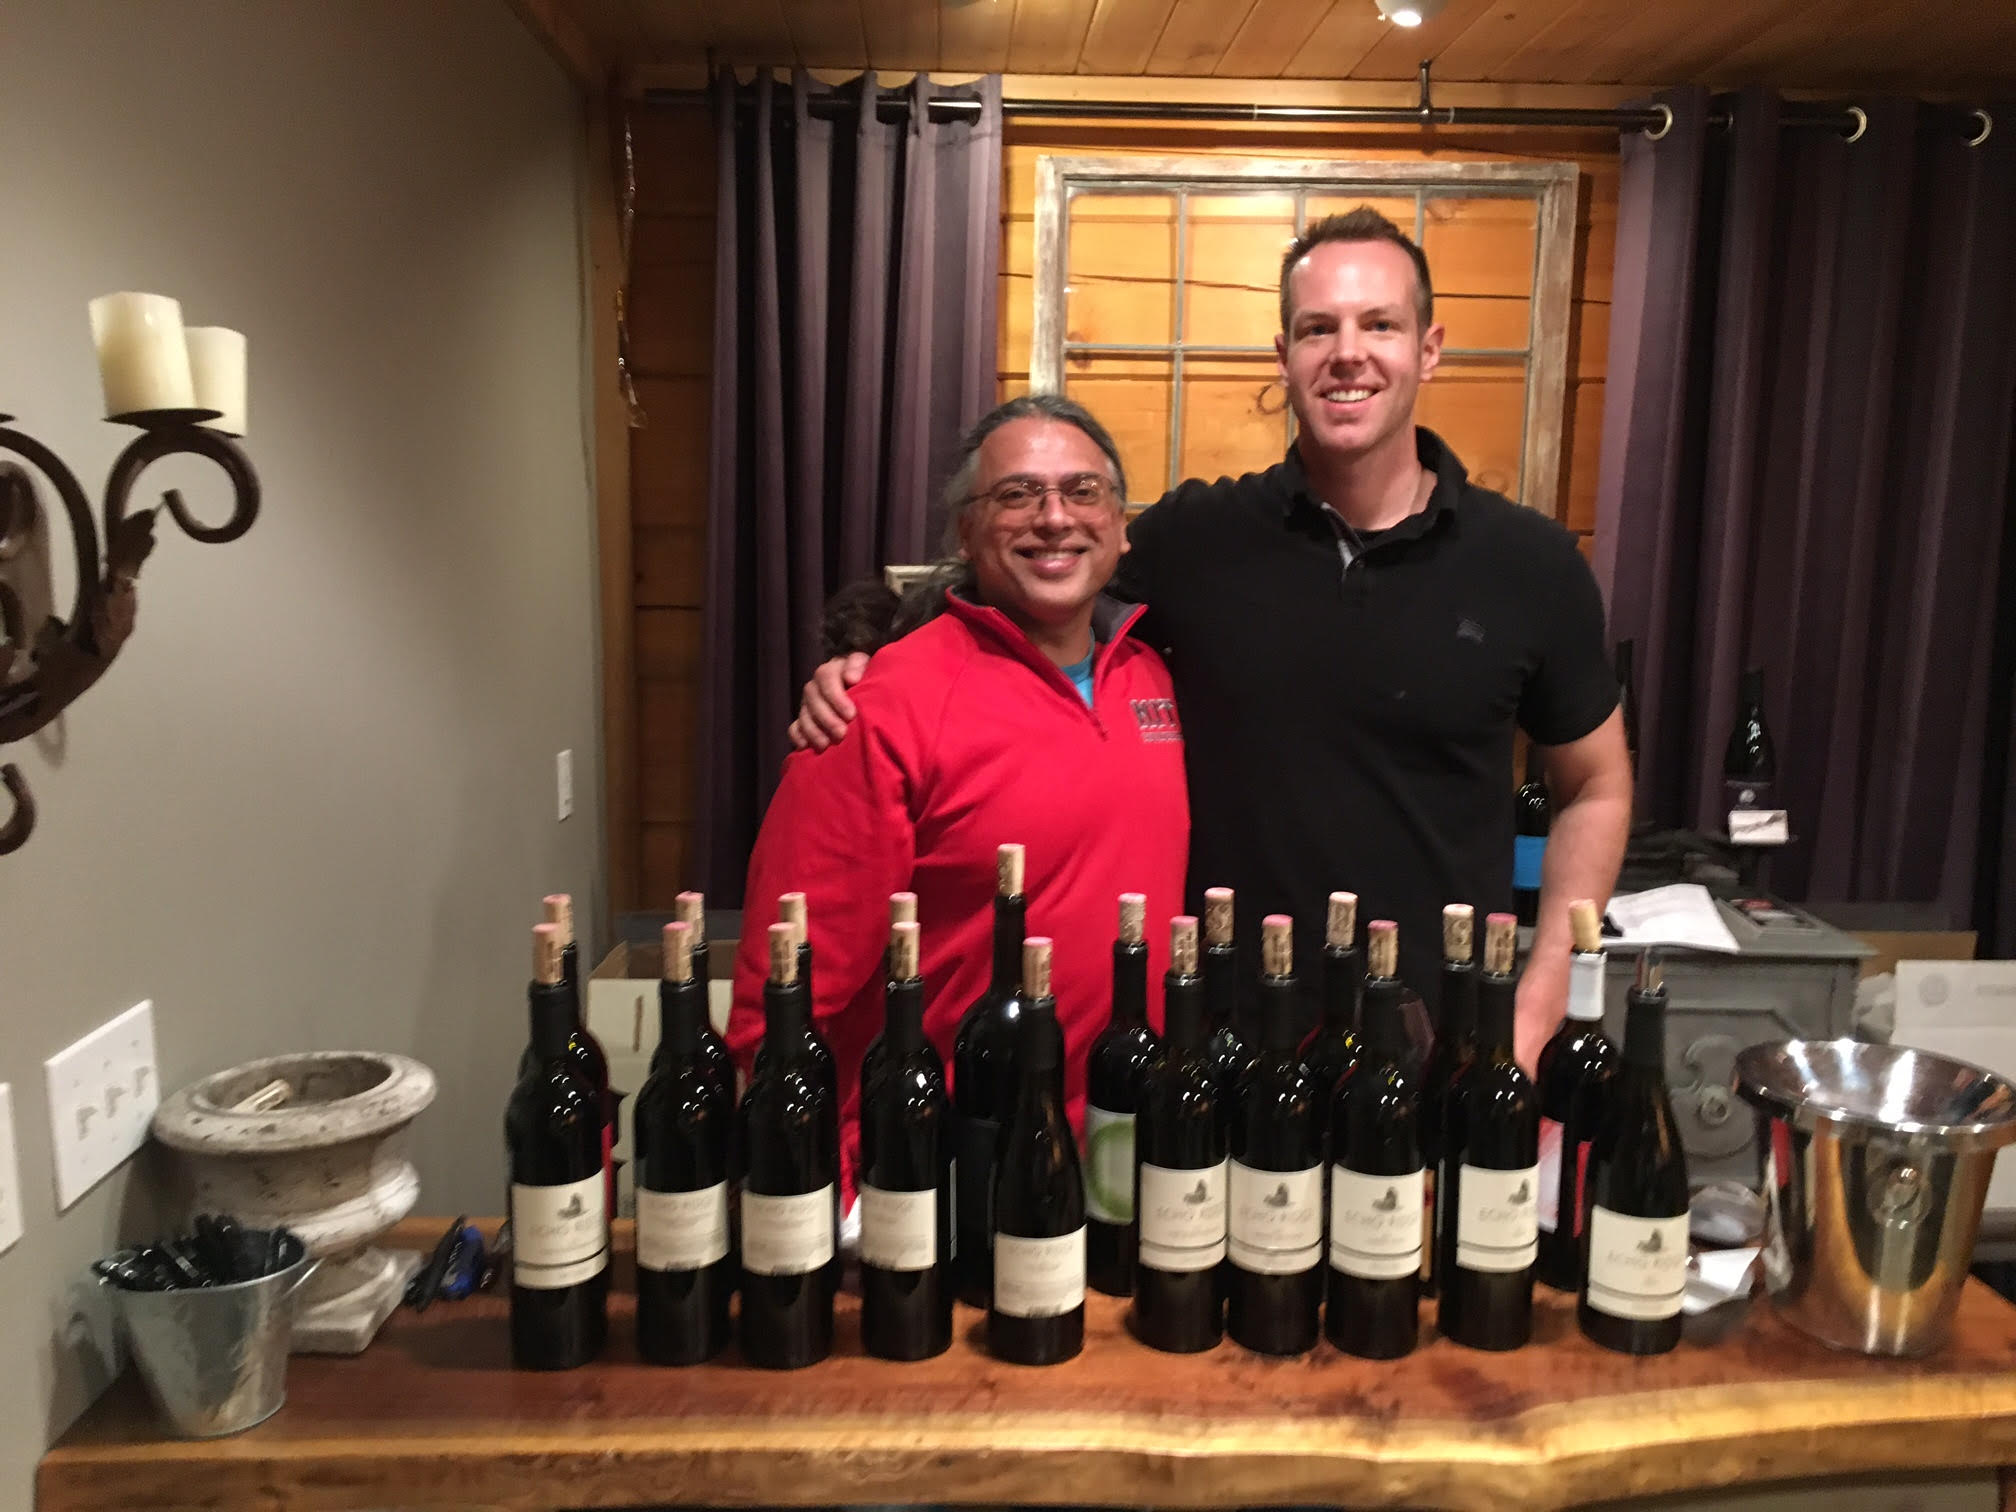 A few weeks back I had the opportunity to taste all the great Rasa Vineyards releases with superstar winemaker Billo Naravane (L)